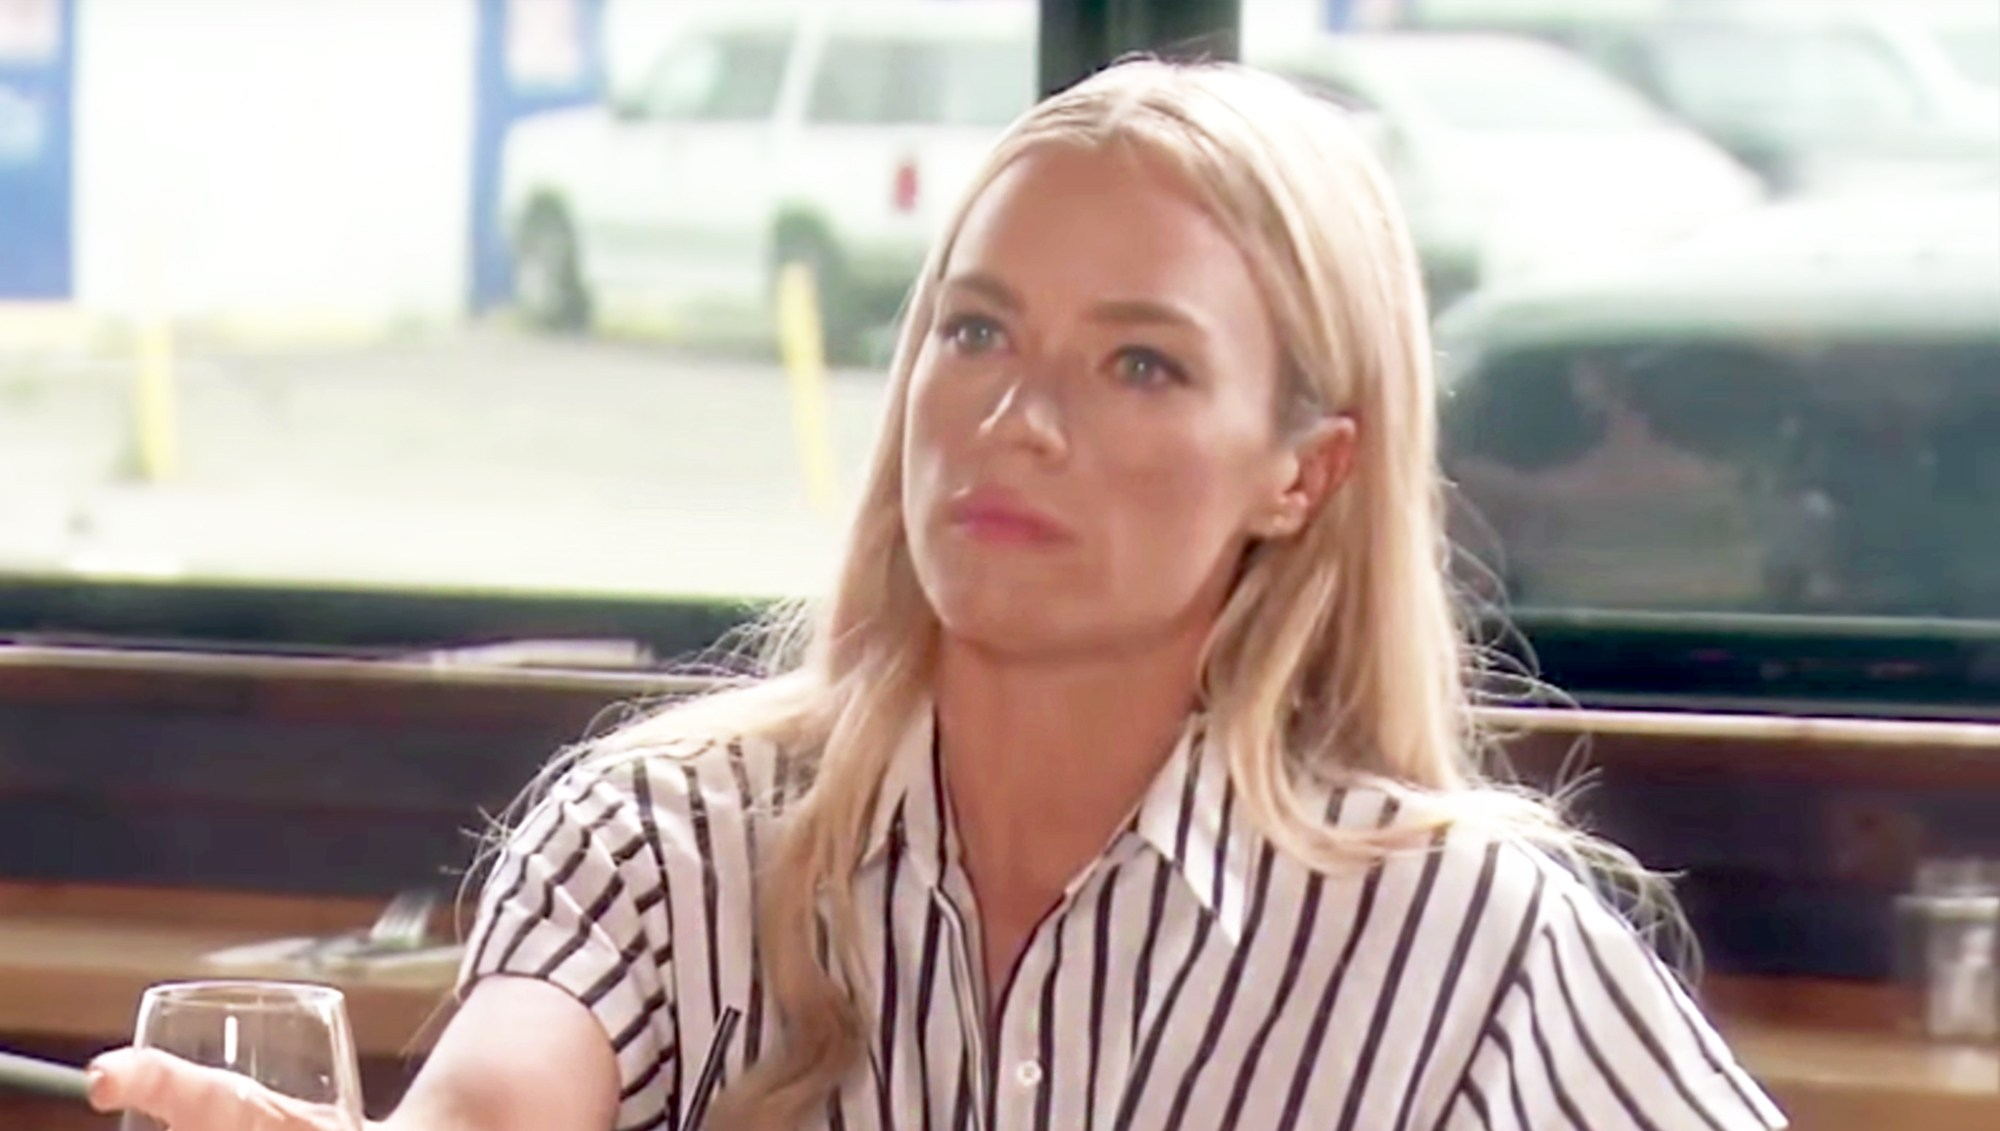 'Real Housewives of Beverly Hills' star Teddi Mellencamp Arroyave